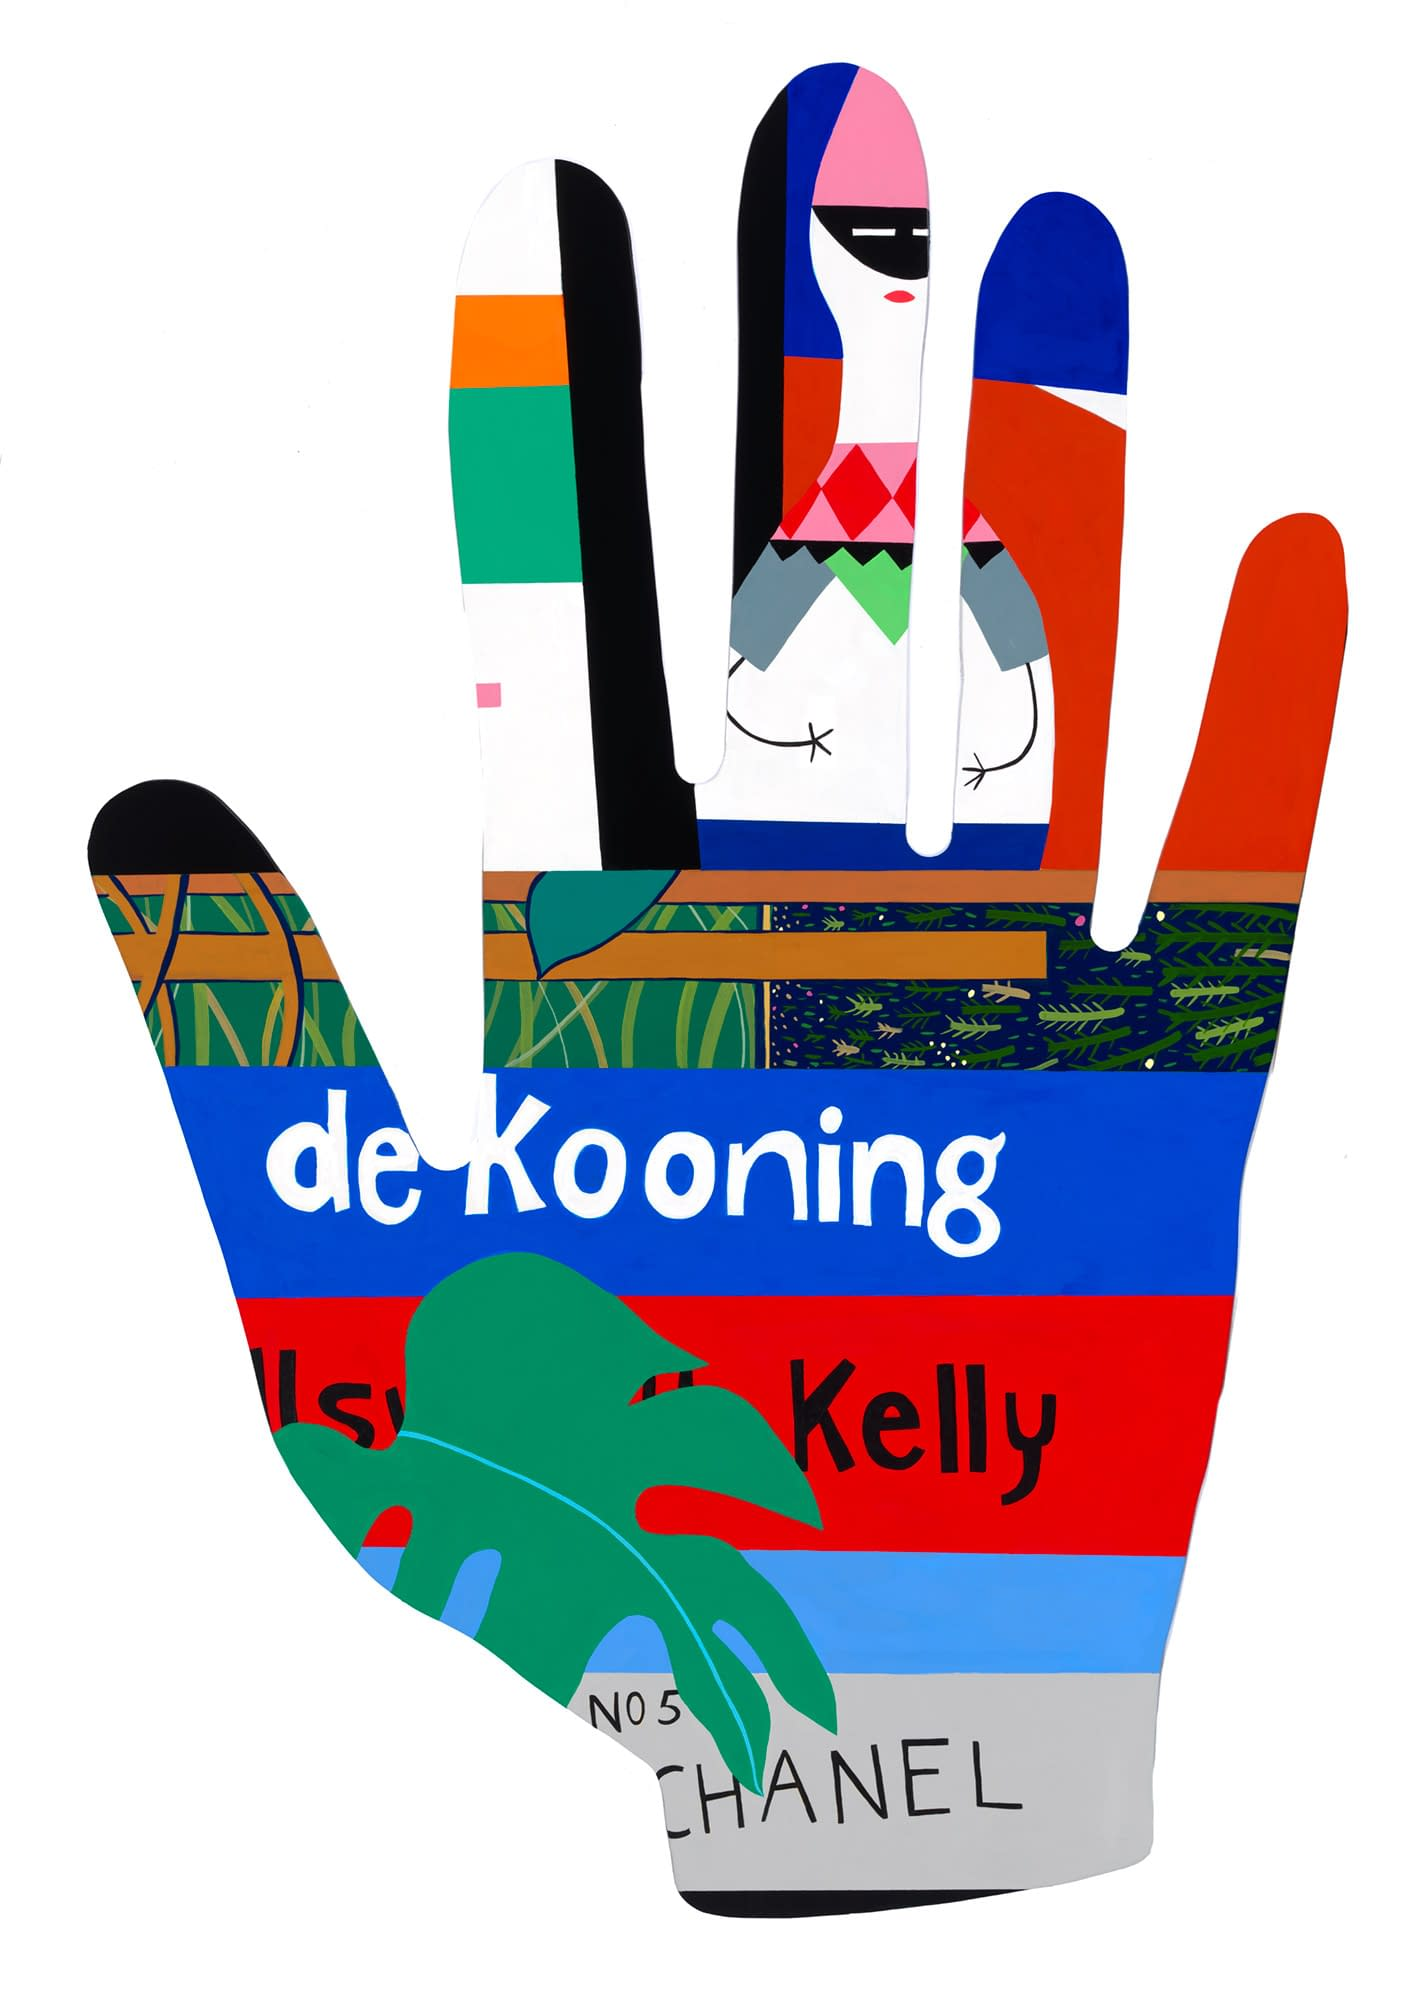 deKooning_Book_with_Girard_Doll_Mary_Finlayson_Vinyl_Paint_and_Gouache_on_Maple_46_x_31